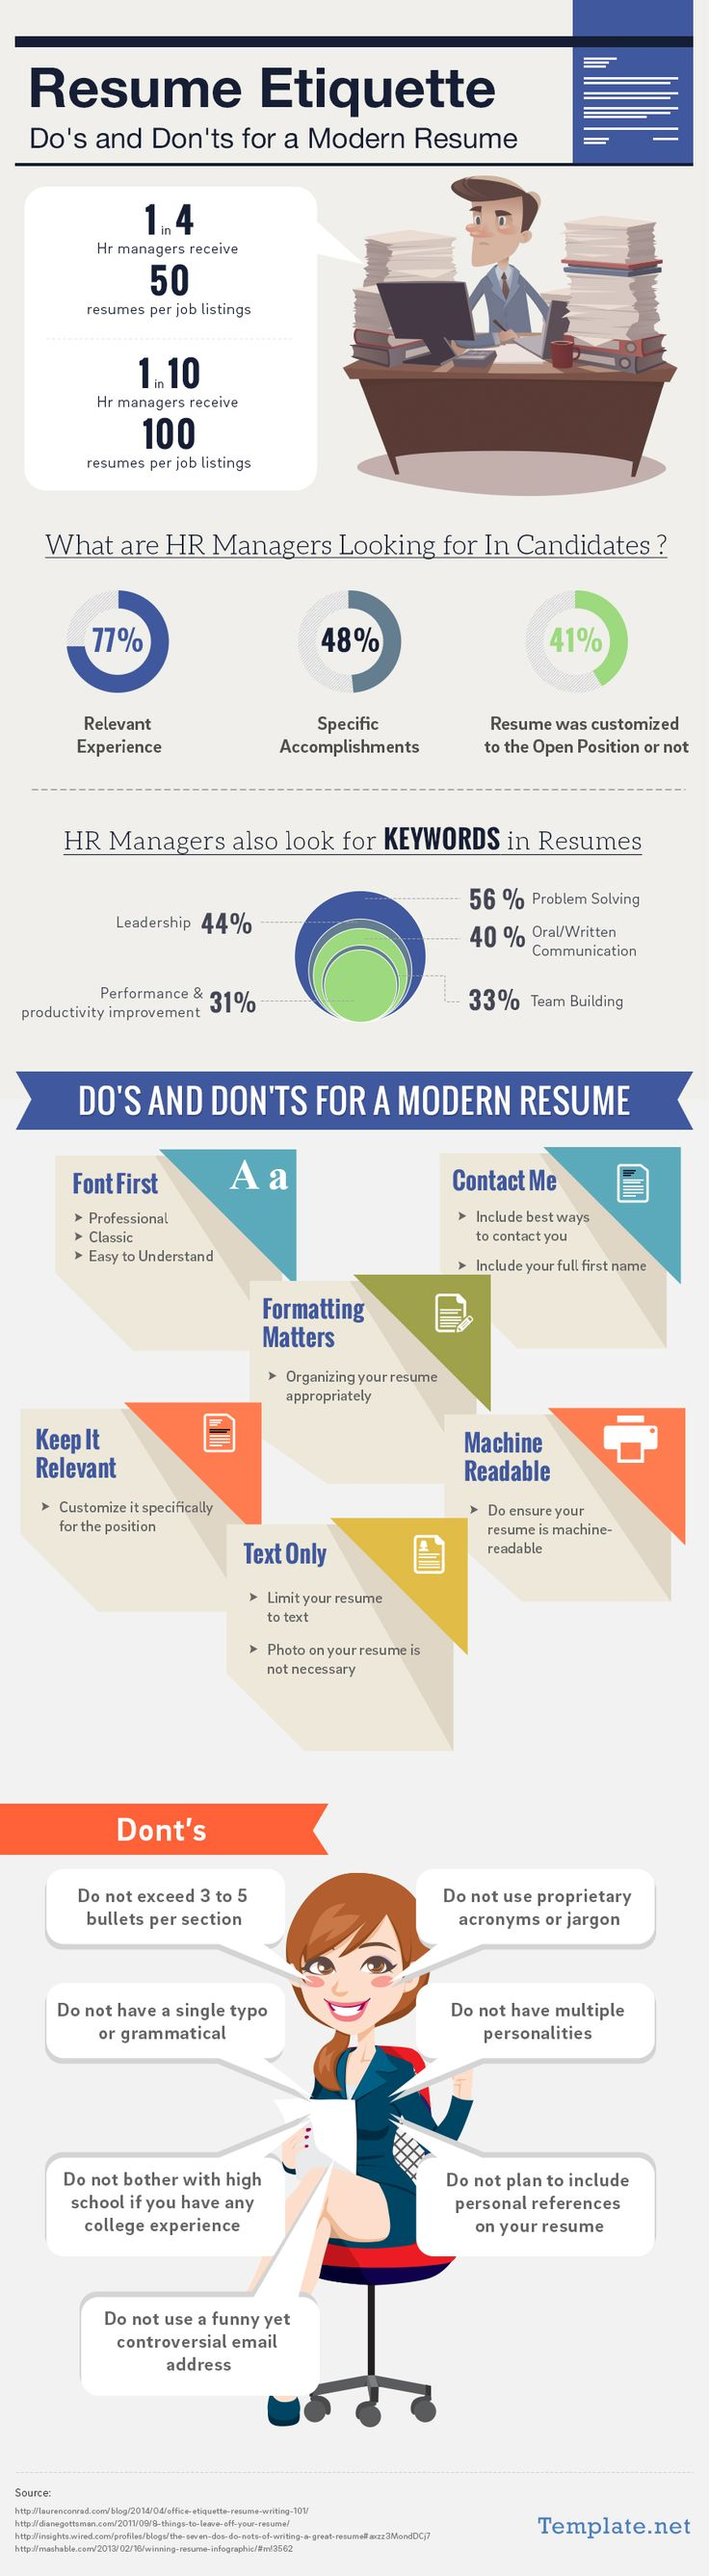 Few Step By Step Tips To Create A Modern Resume  10 Tips For Creating A Resume